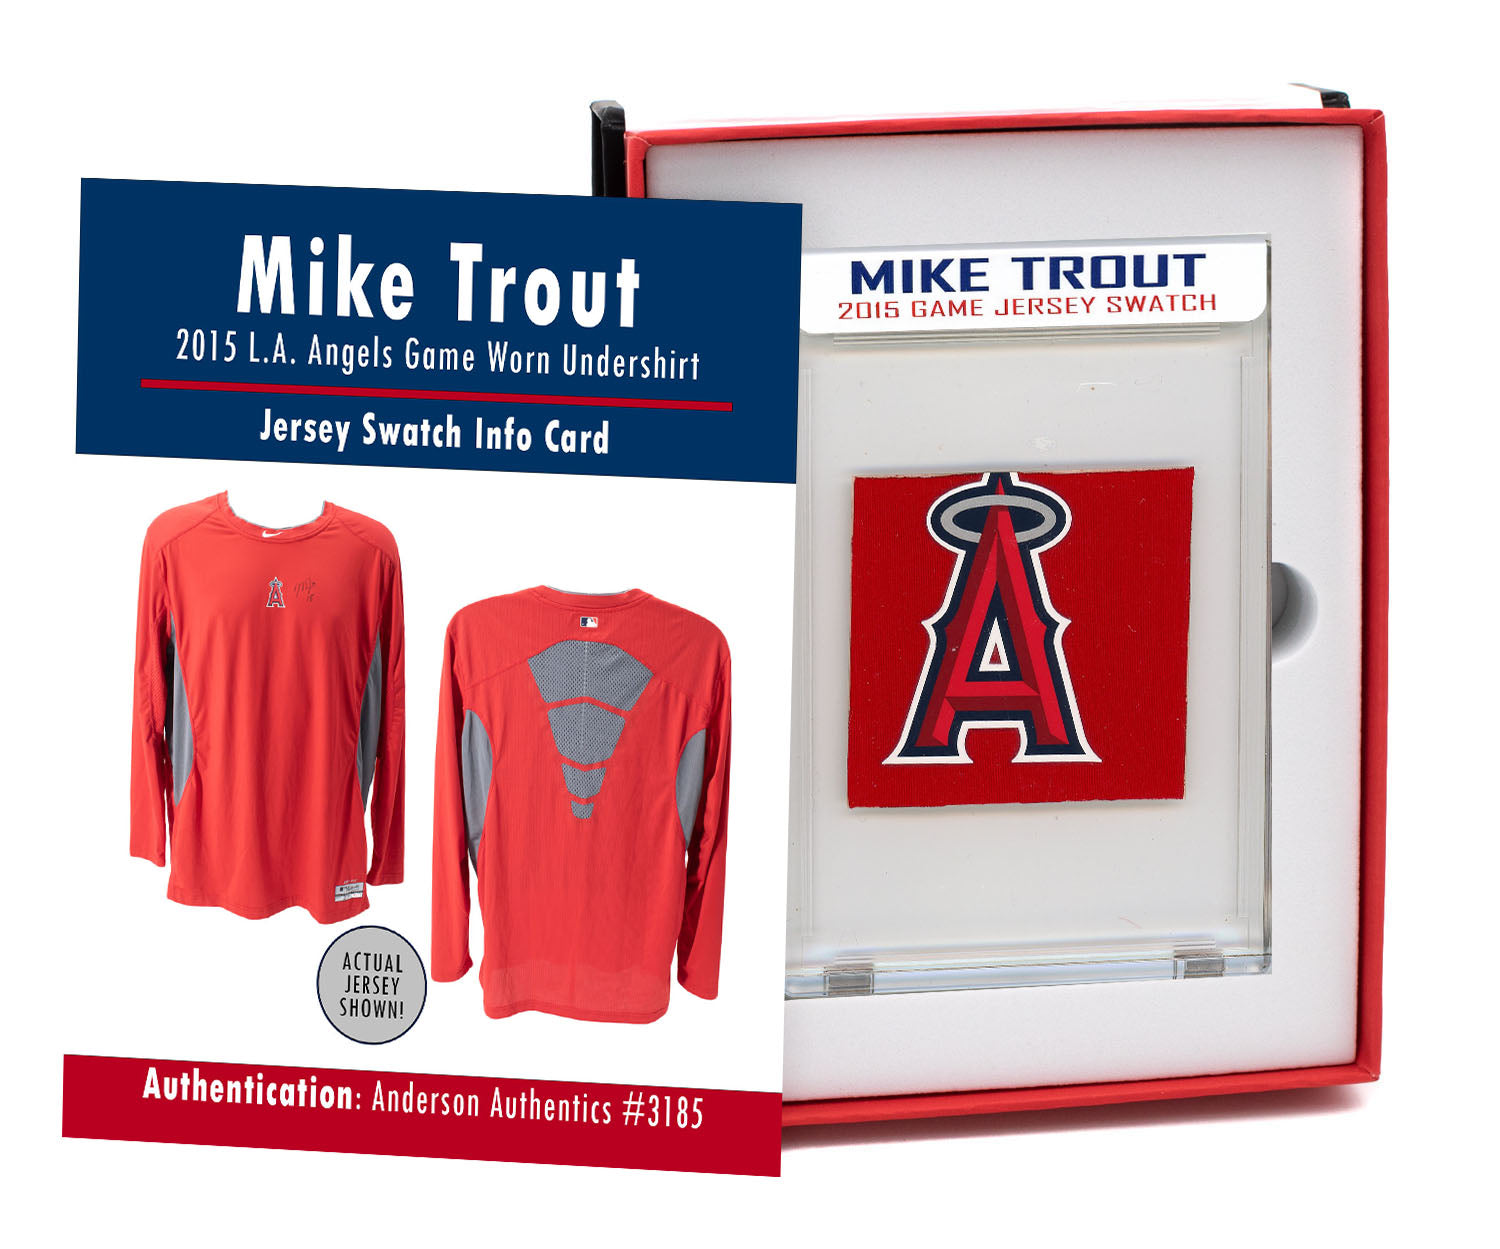 MIKE TROUT 2015 ANGELS GAME WORN UNDERSHIRT MYSTERY SWATCH BOX!